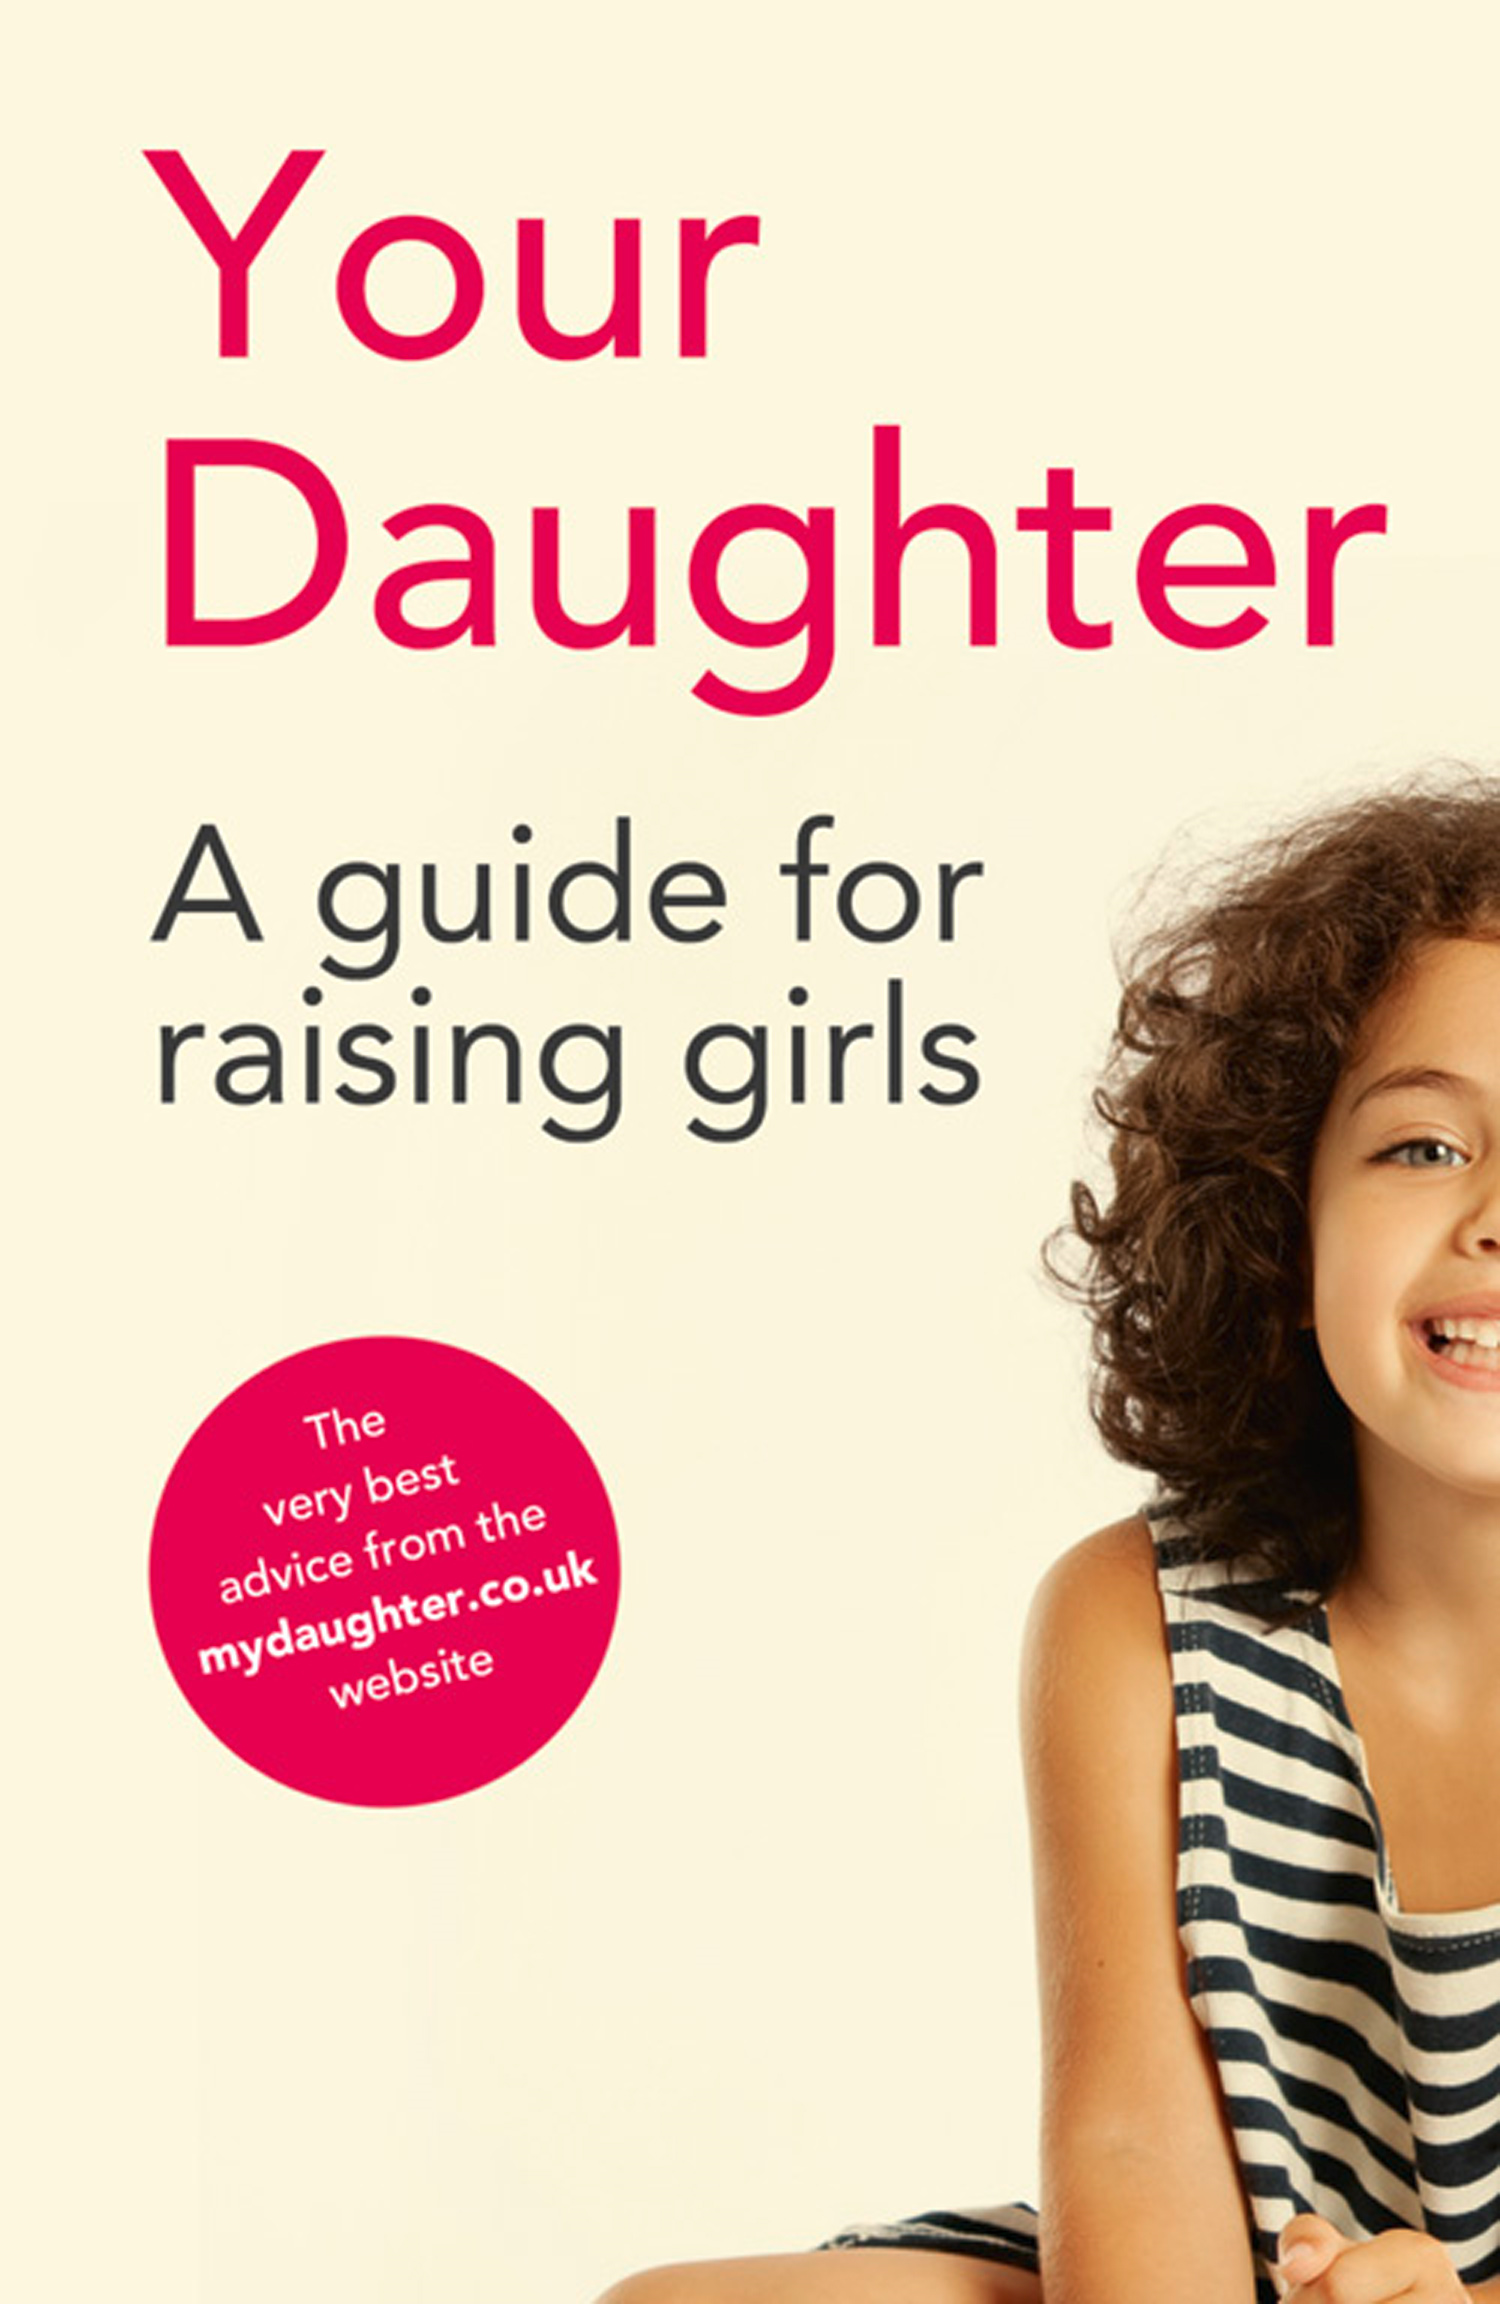 Your Daughter By: Girls' Schools Association